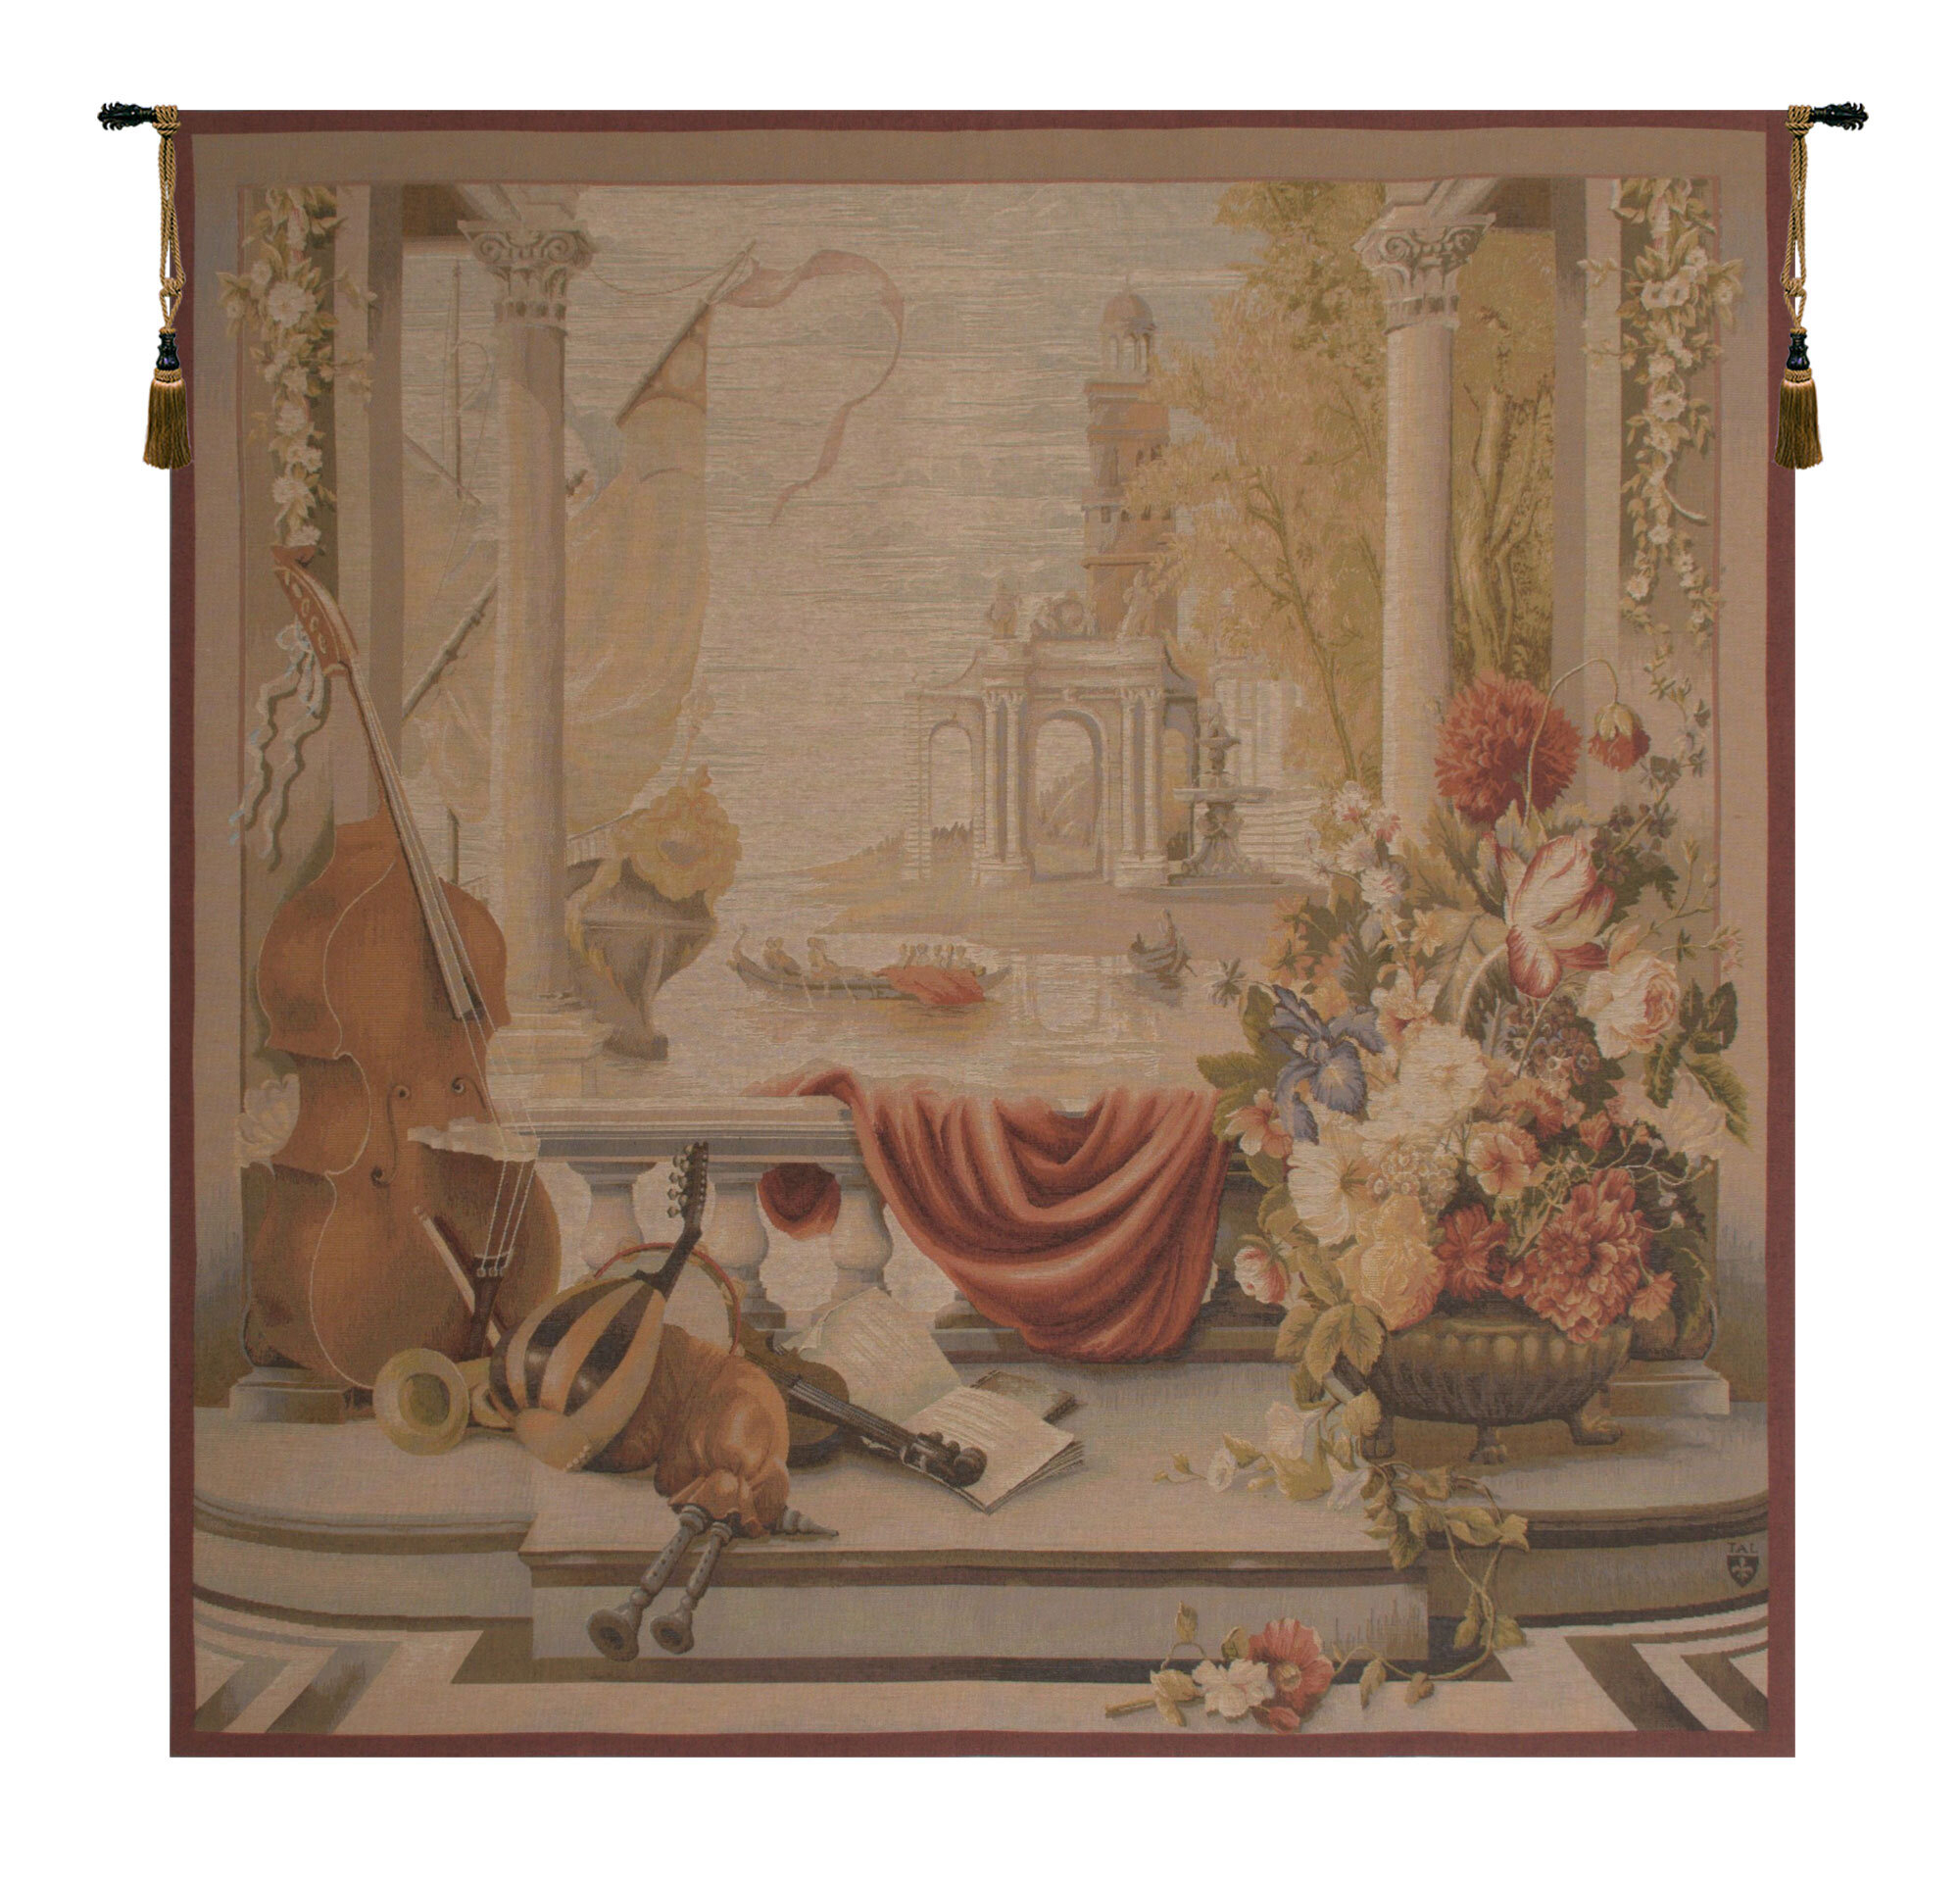 40 X 60 Art Tapestries You'll Love In 2021 | Wayfair Intended For Latest Blended Fabric Woodpecker European Tapestries (View 16 of 20)